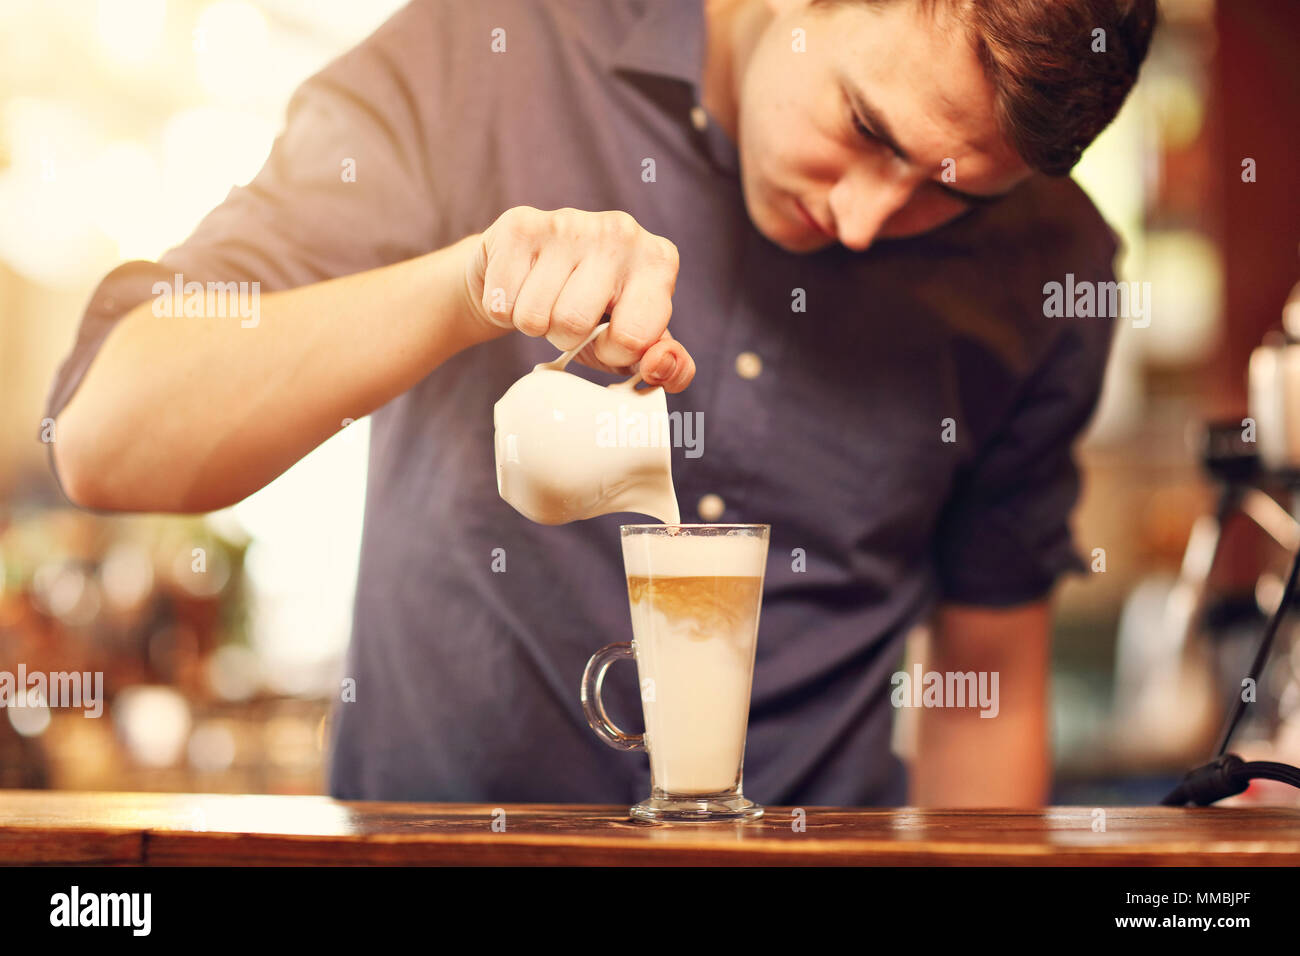 Barista Cafe Making Coffee Preparation Service Concept - Stock Image